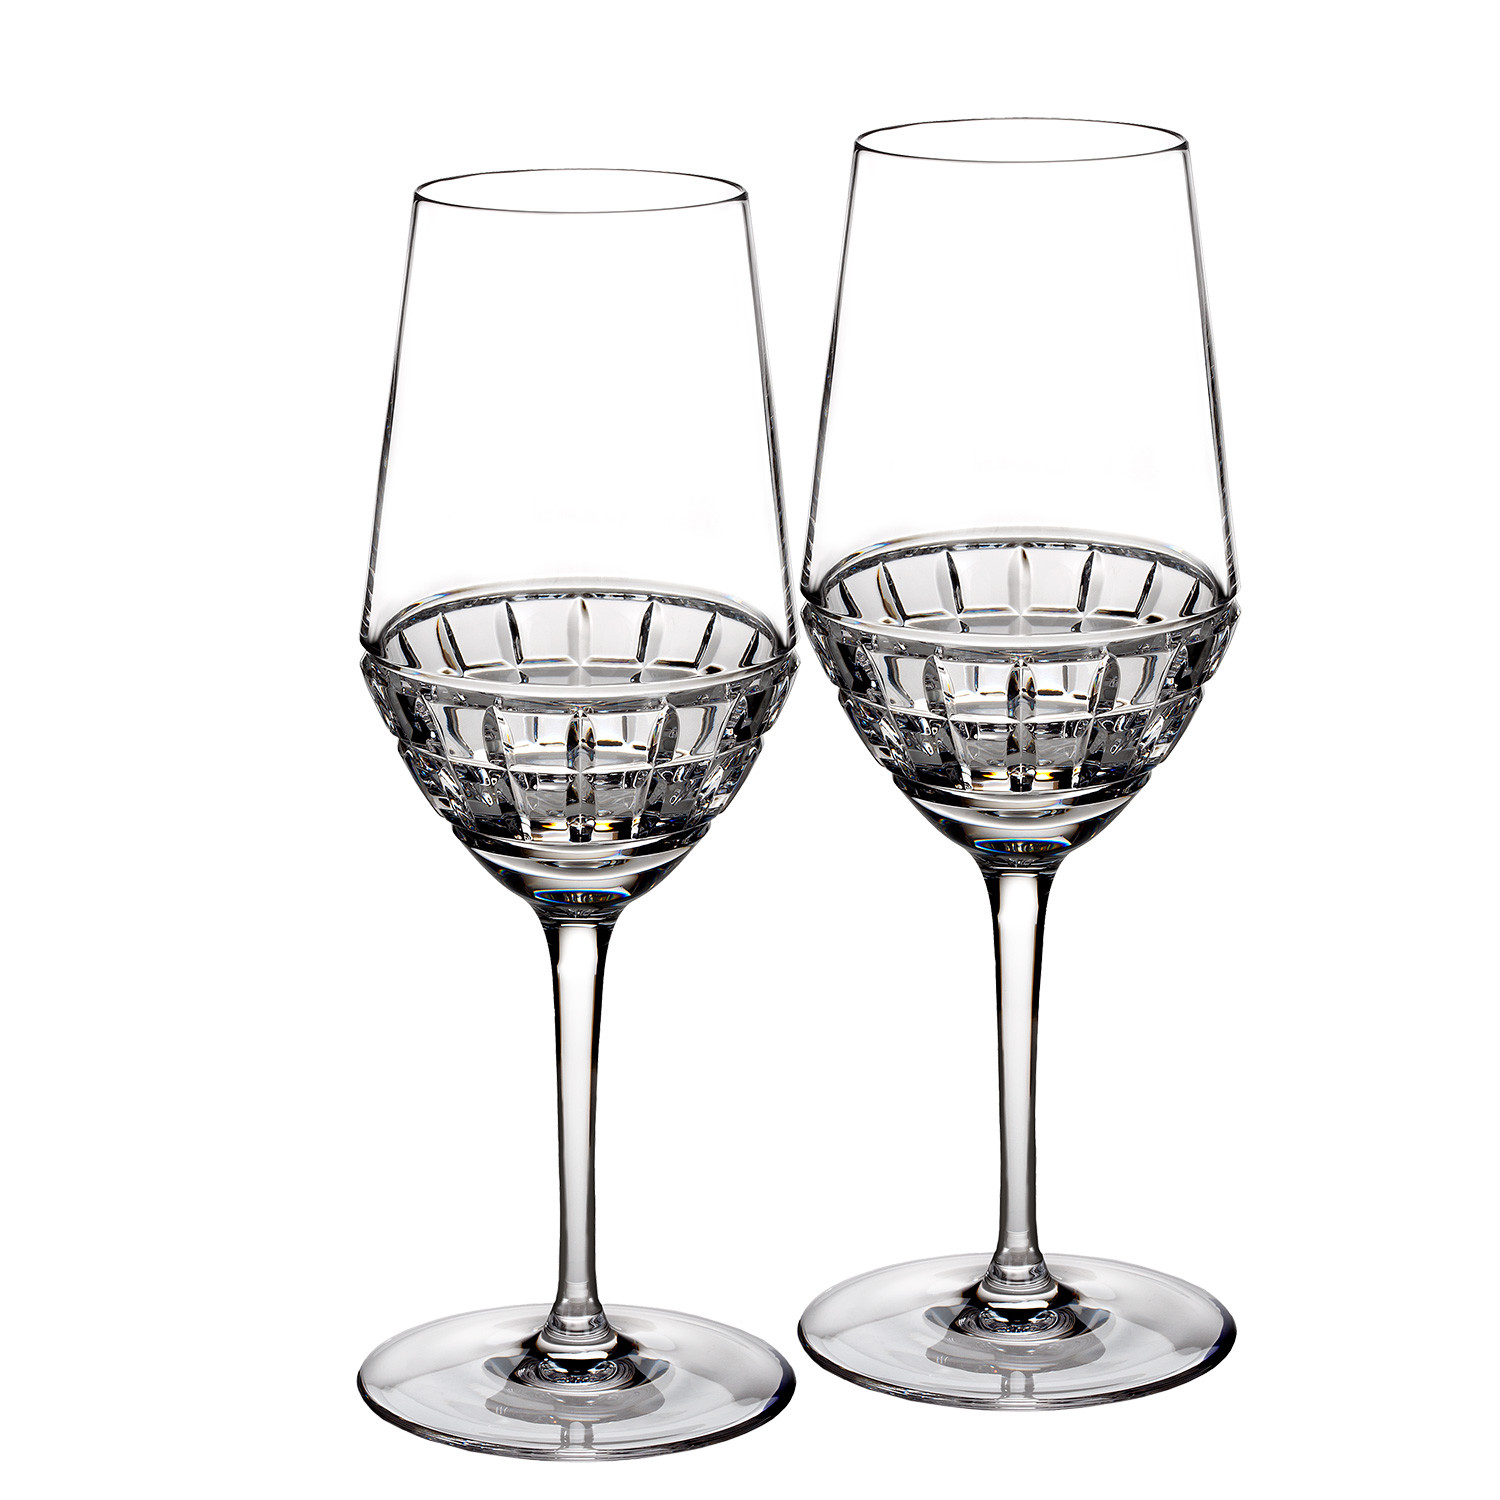 waterford lismore 8 crystal vase of stem barware william ashley china intended for set 2 wine glasses 24cm 295ml a· waterford